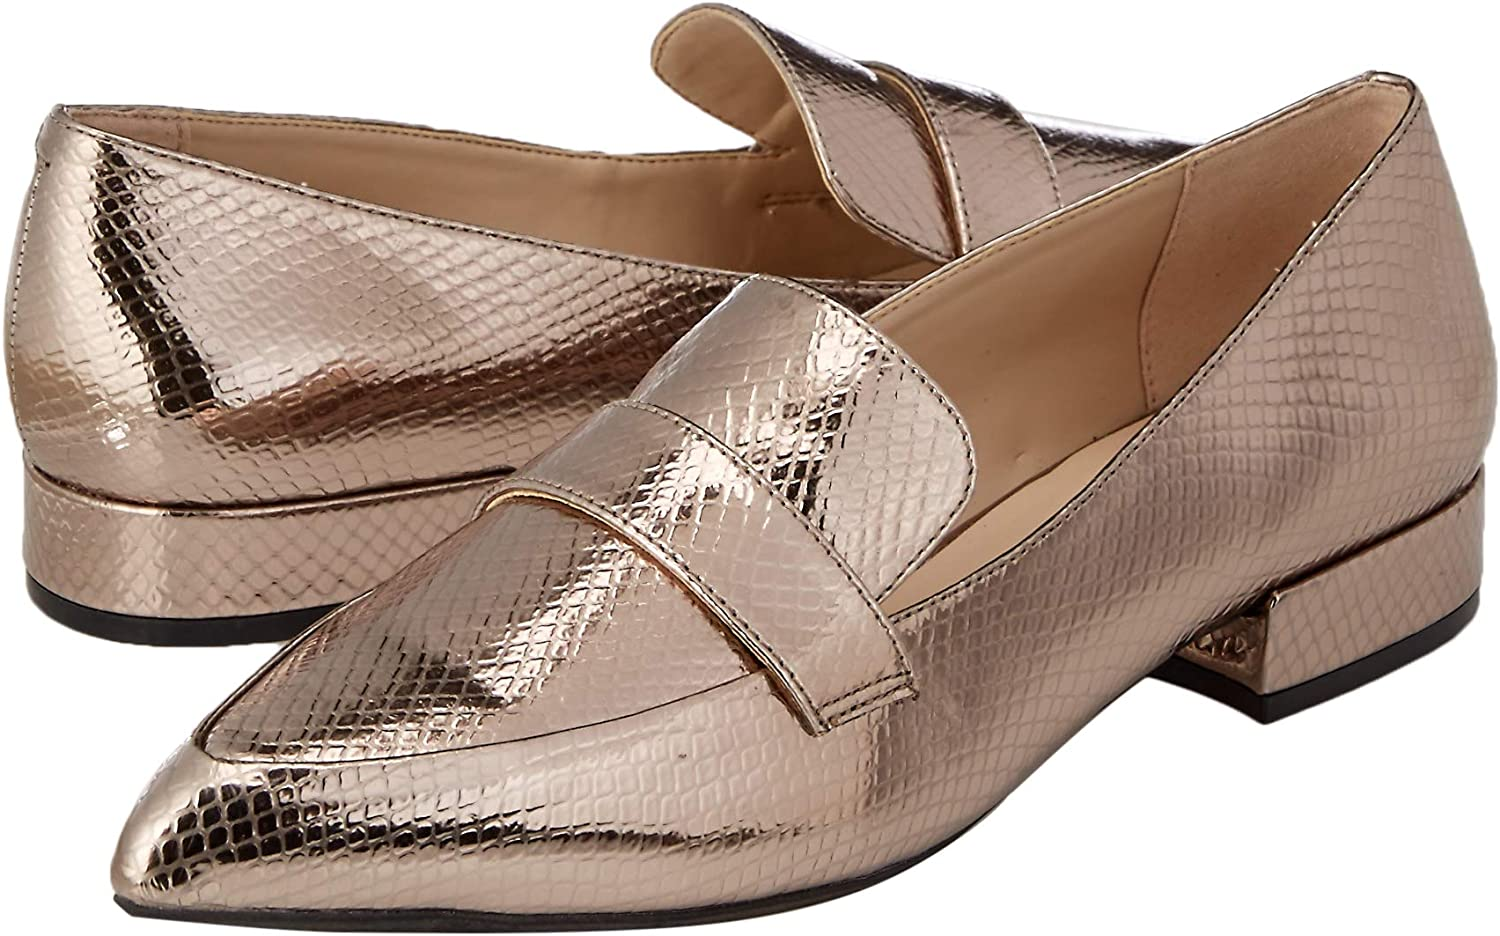 Kenneth Cole New York Womens Camilia 2 Pointy Toe Loafer Flat